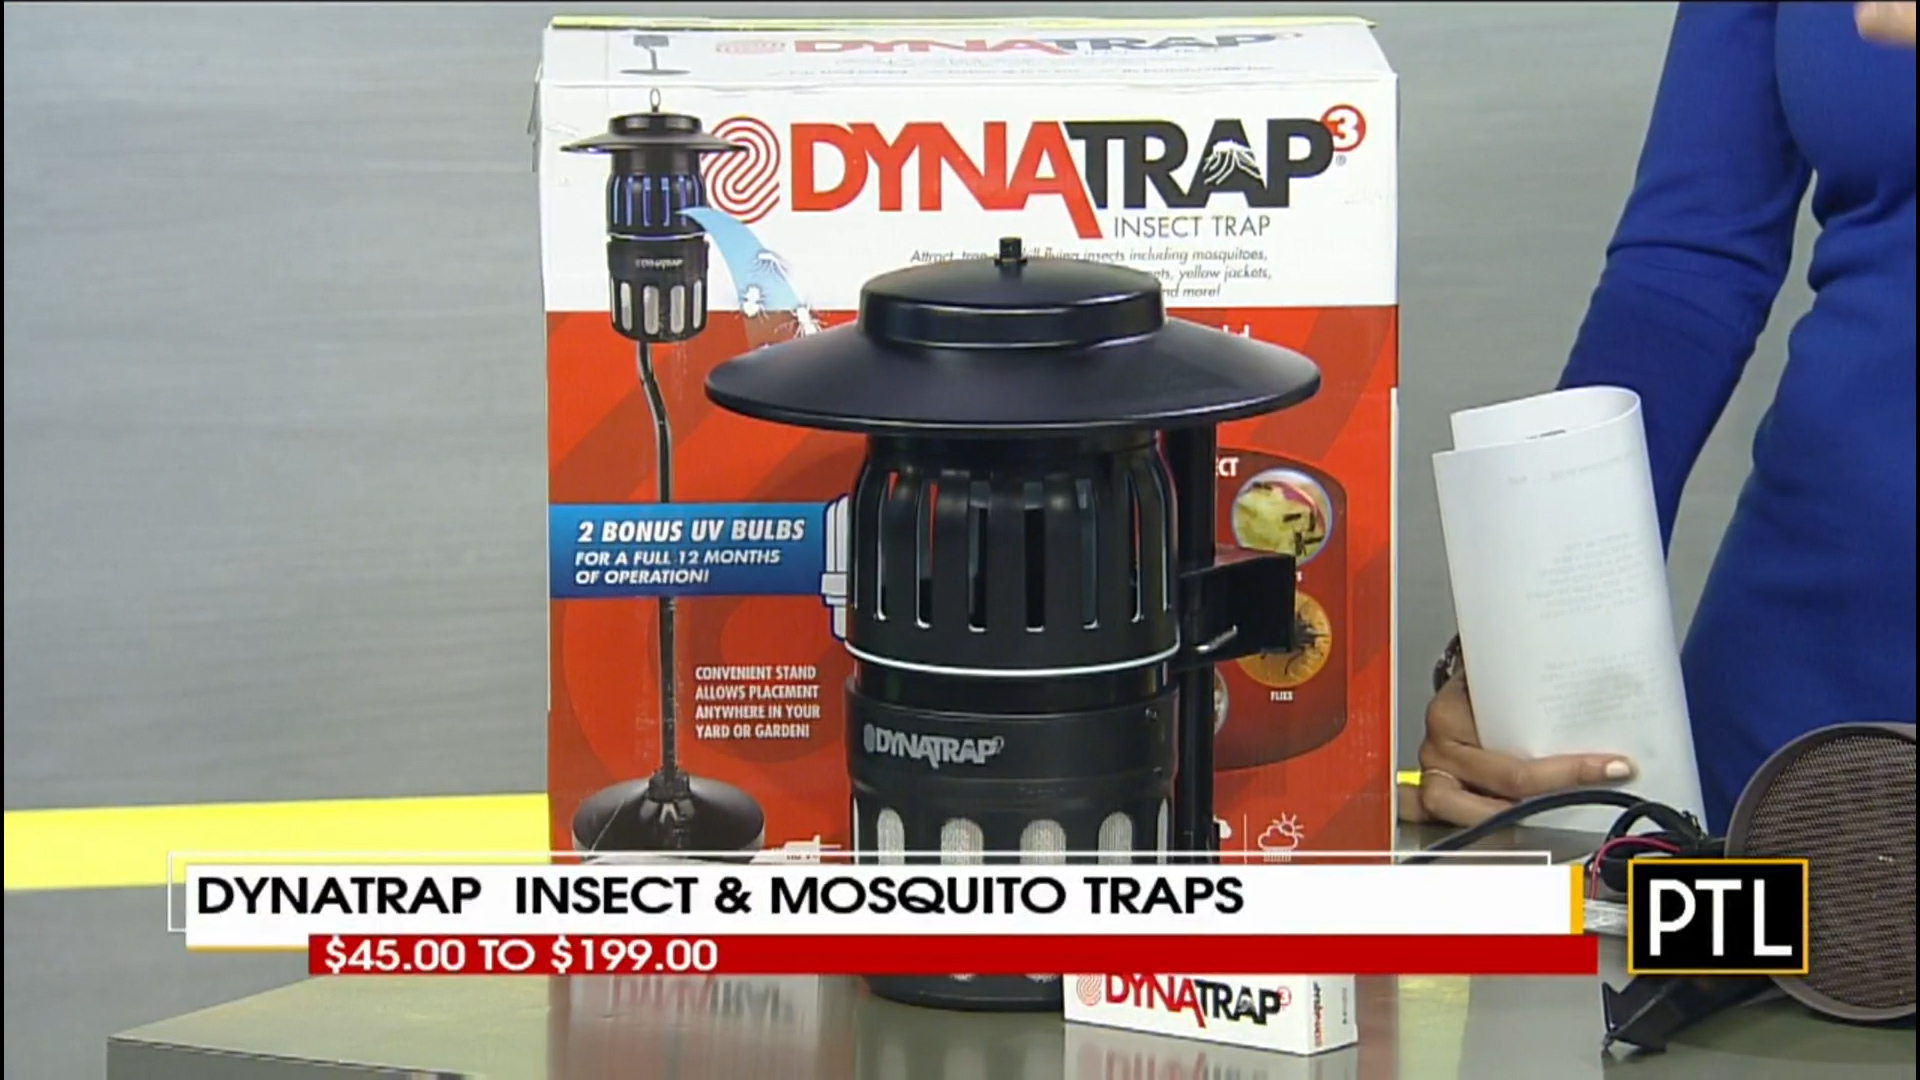 DYNATRAP INSECT & MOSQUITO TRAPS - $45.00 to $199.00Shop Now